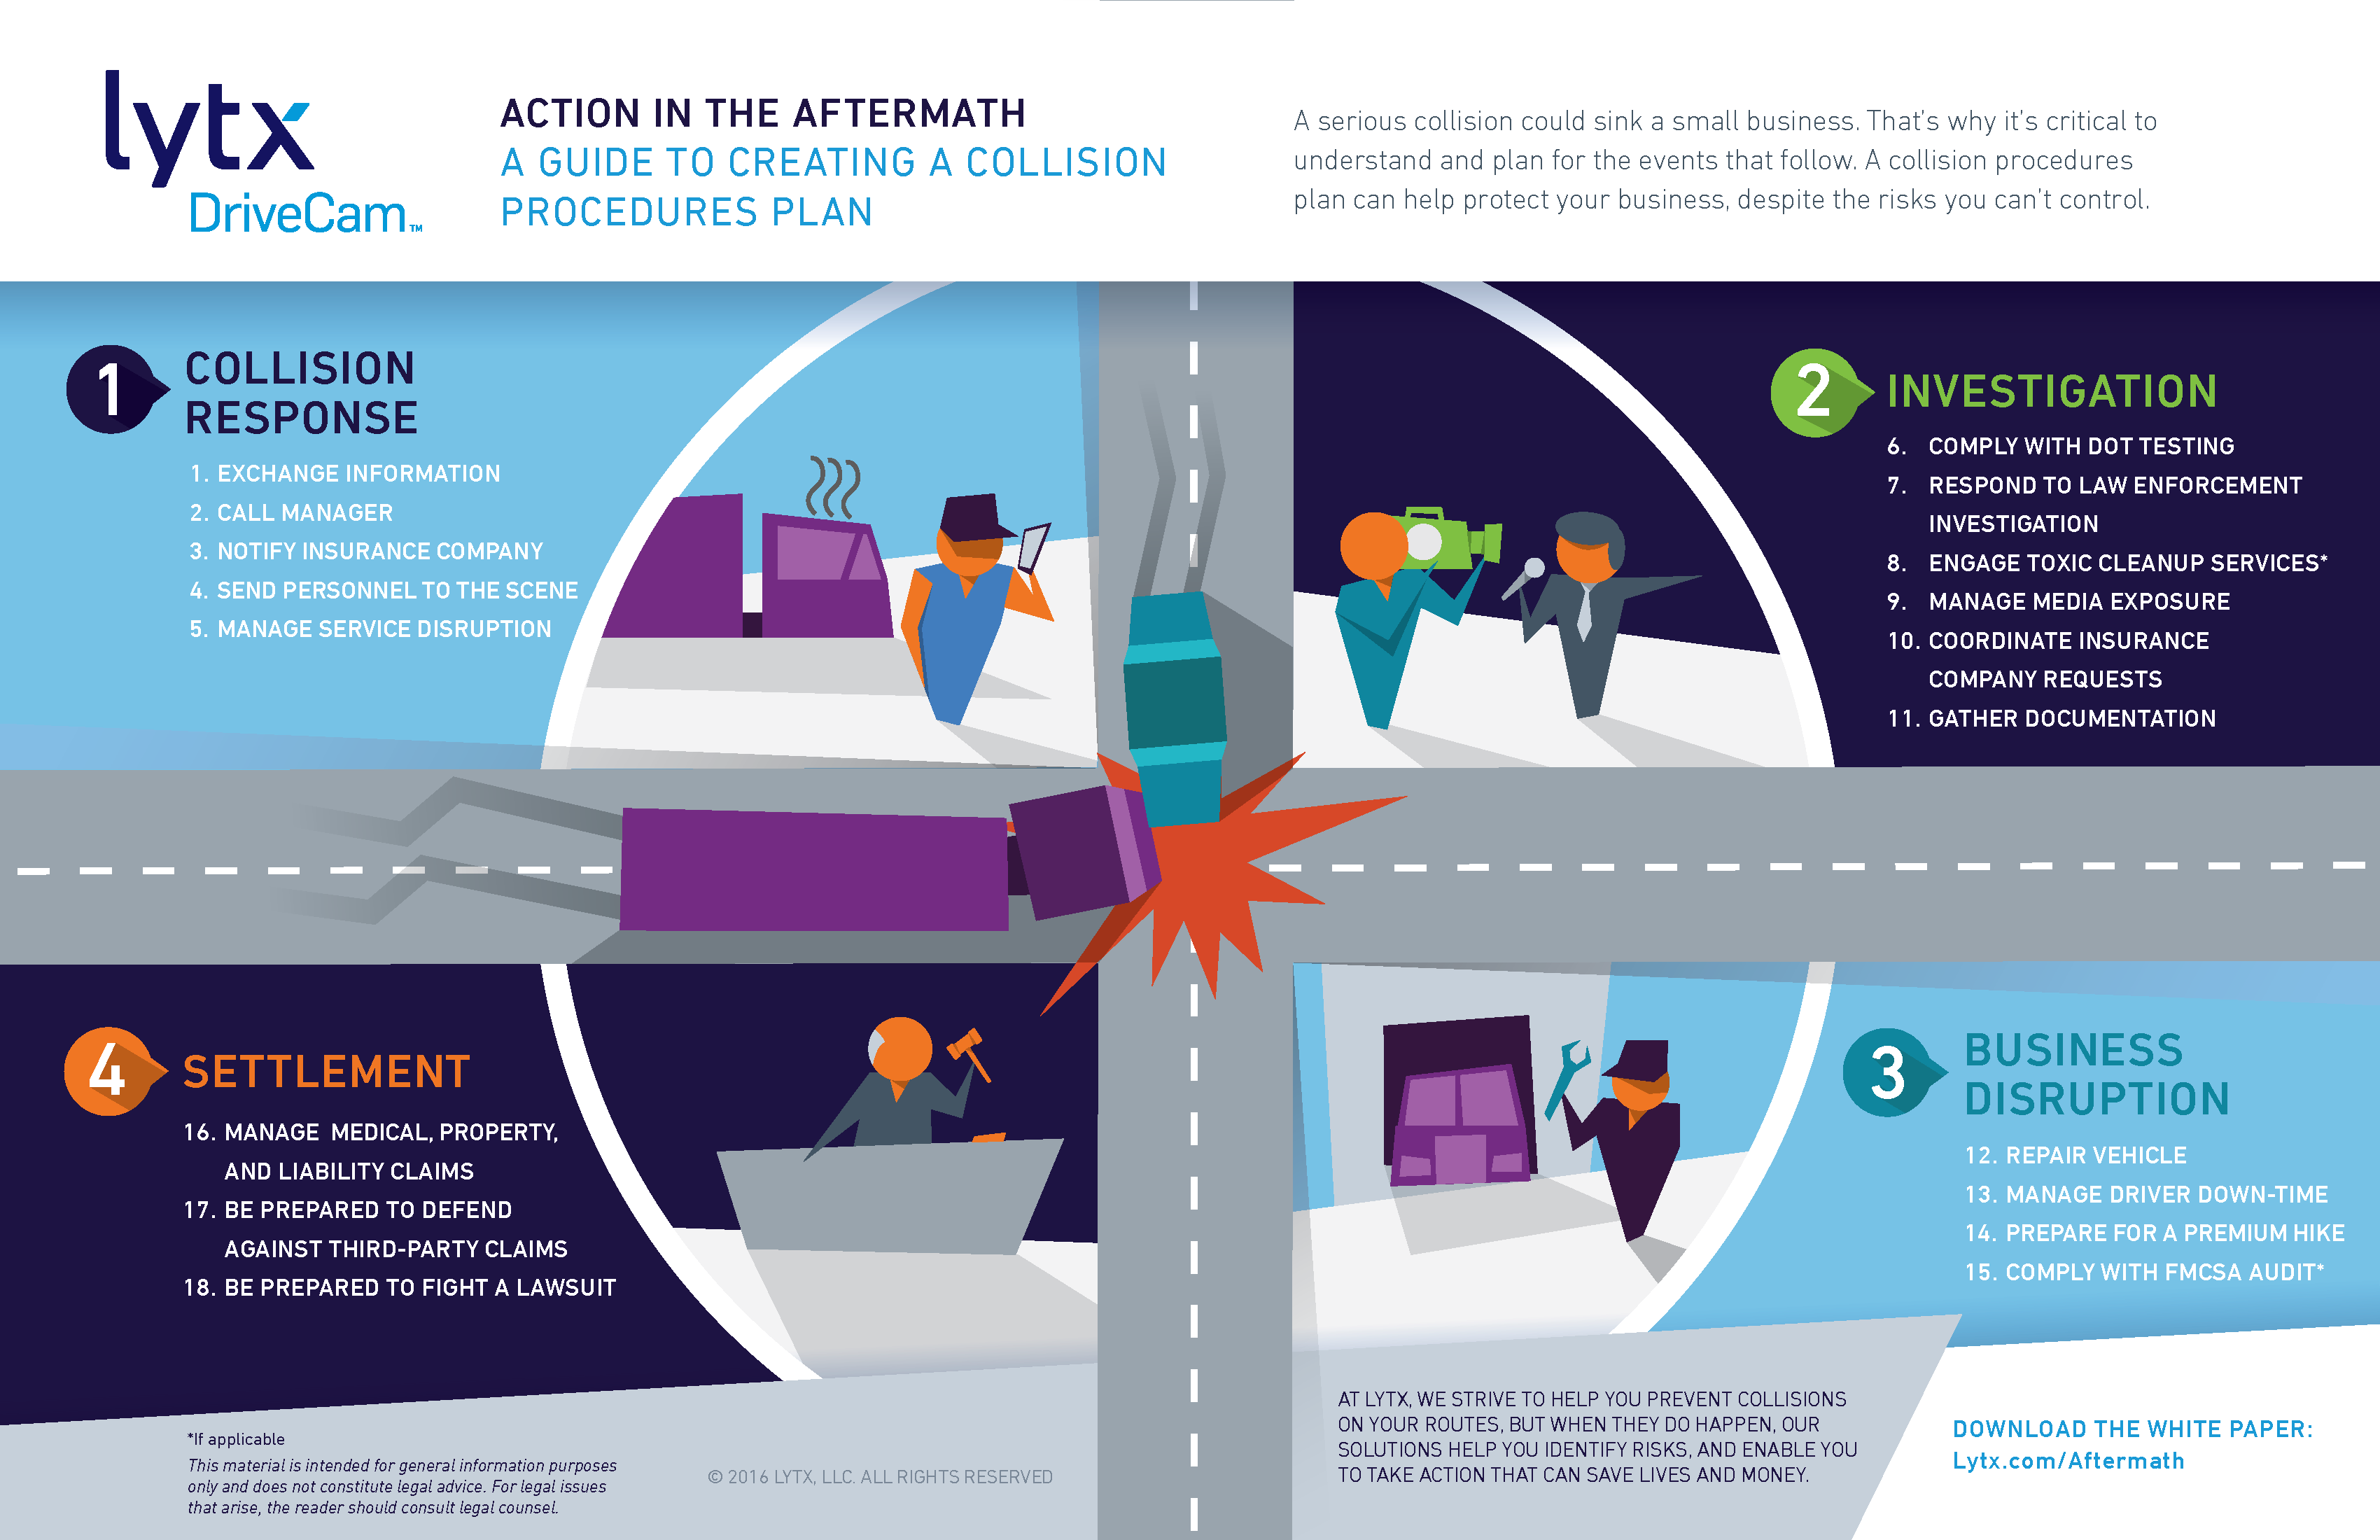 Action in the Aftermath infographic